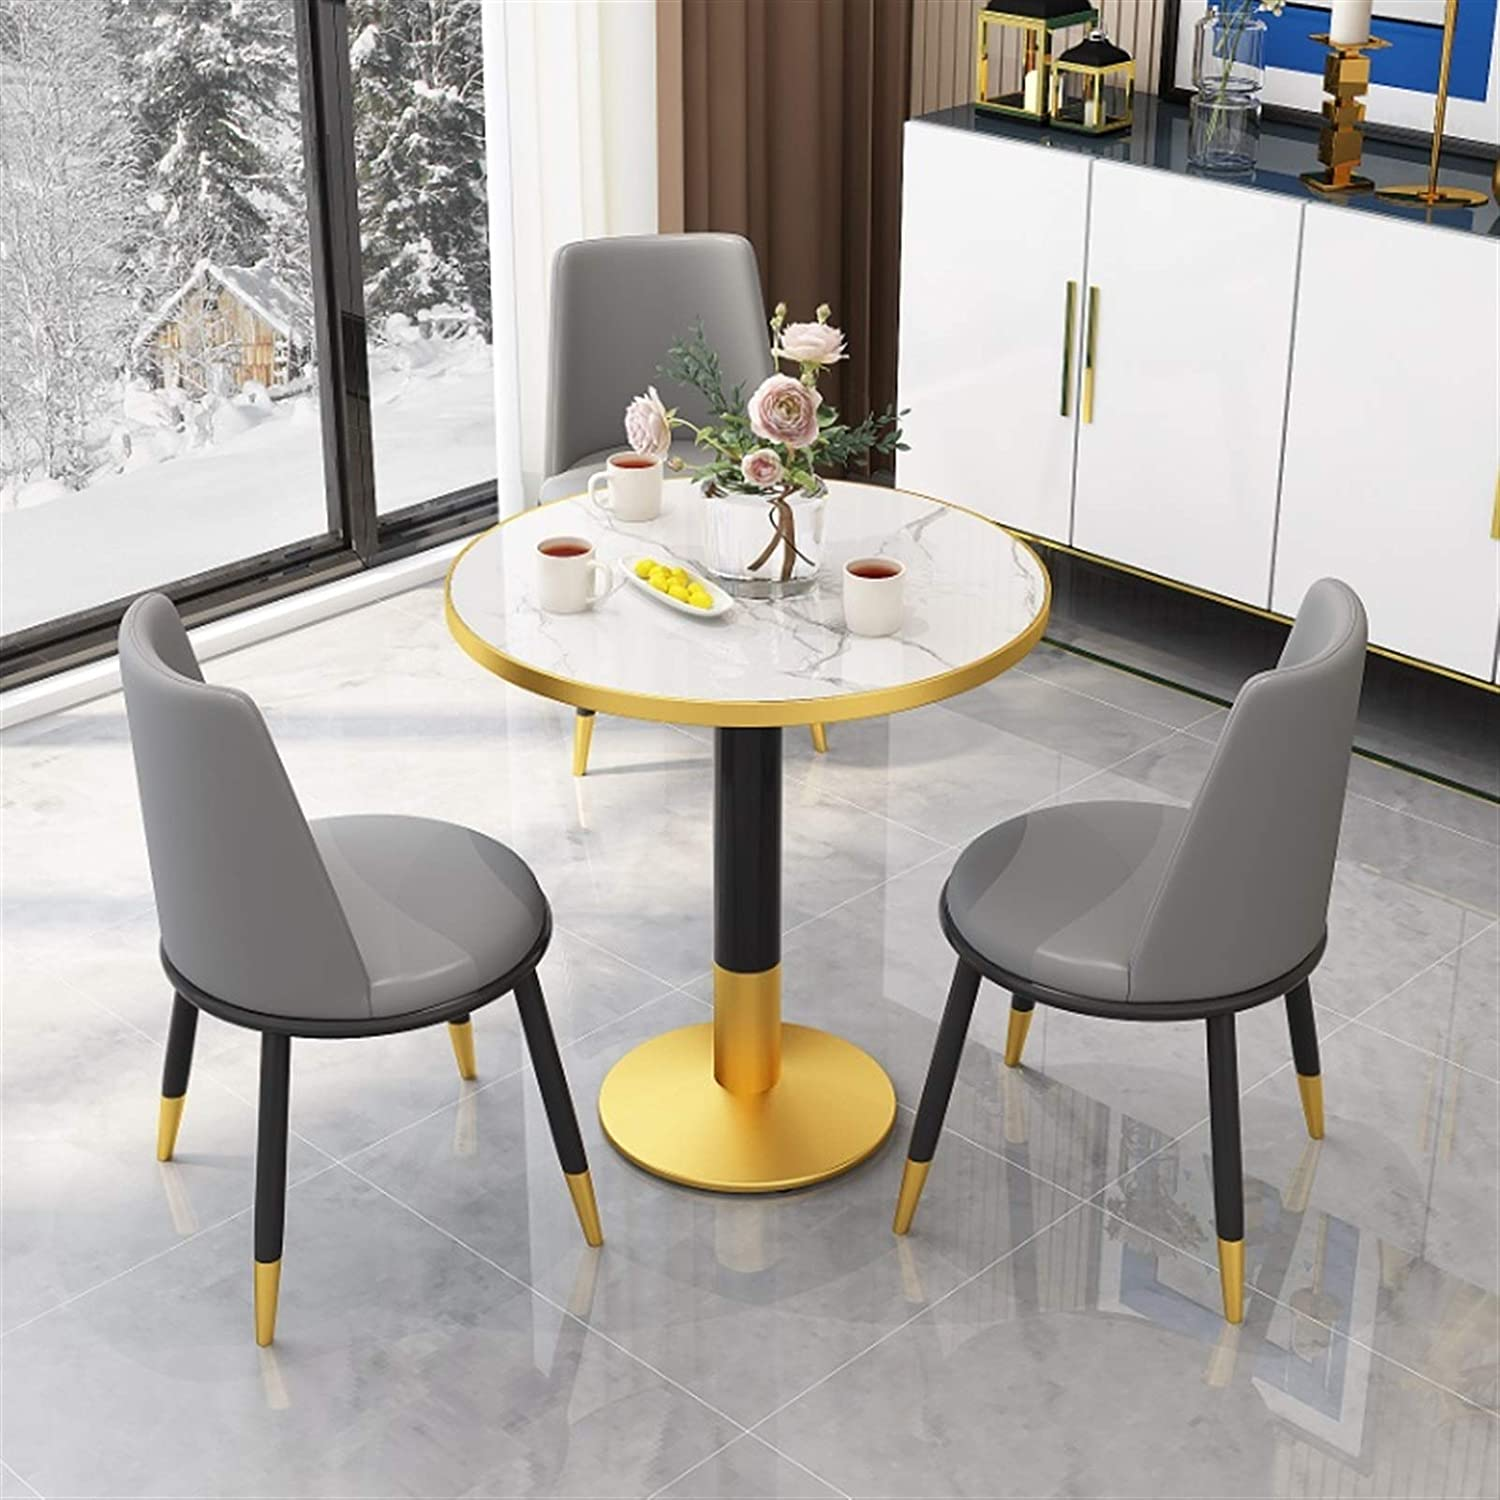 WANGLX Dining Table Set for Living Attention brand and Kitchen Room Dealing full price reduction